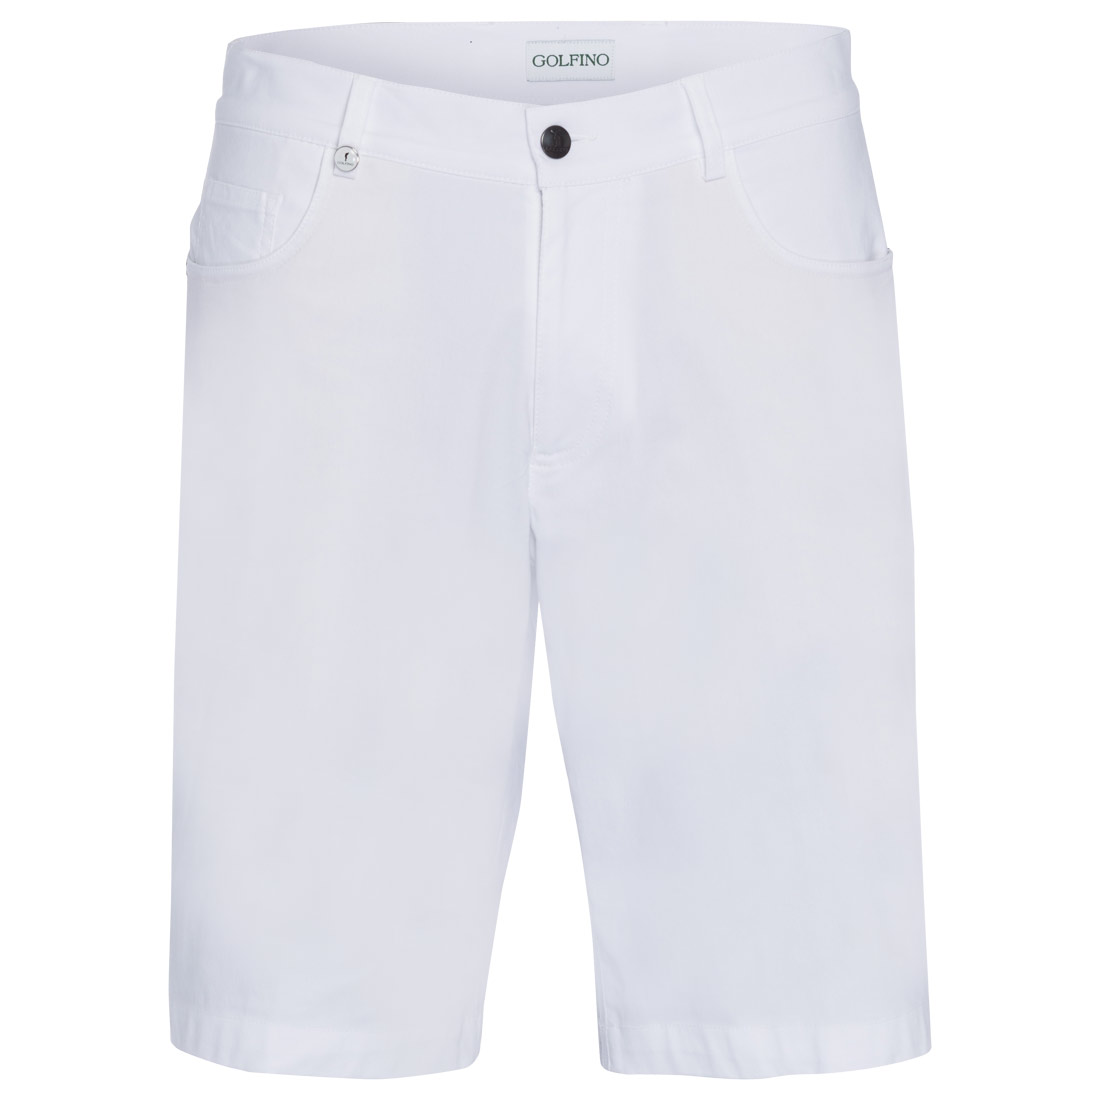 Herren Performance Golf-Bermuda